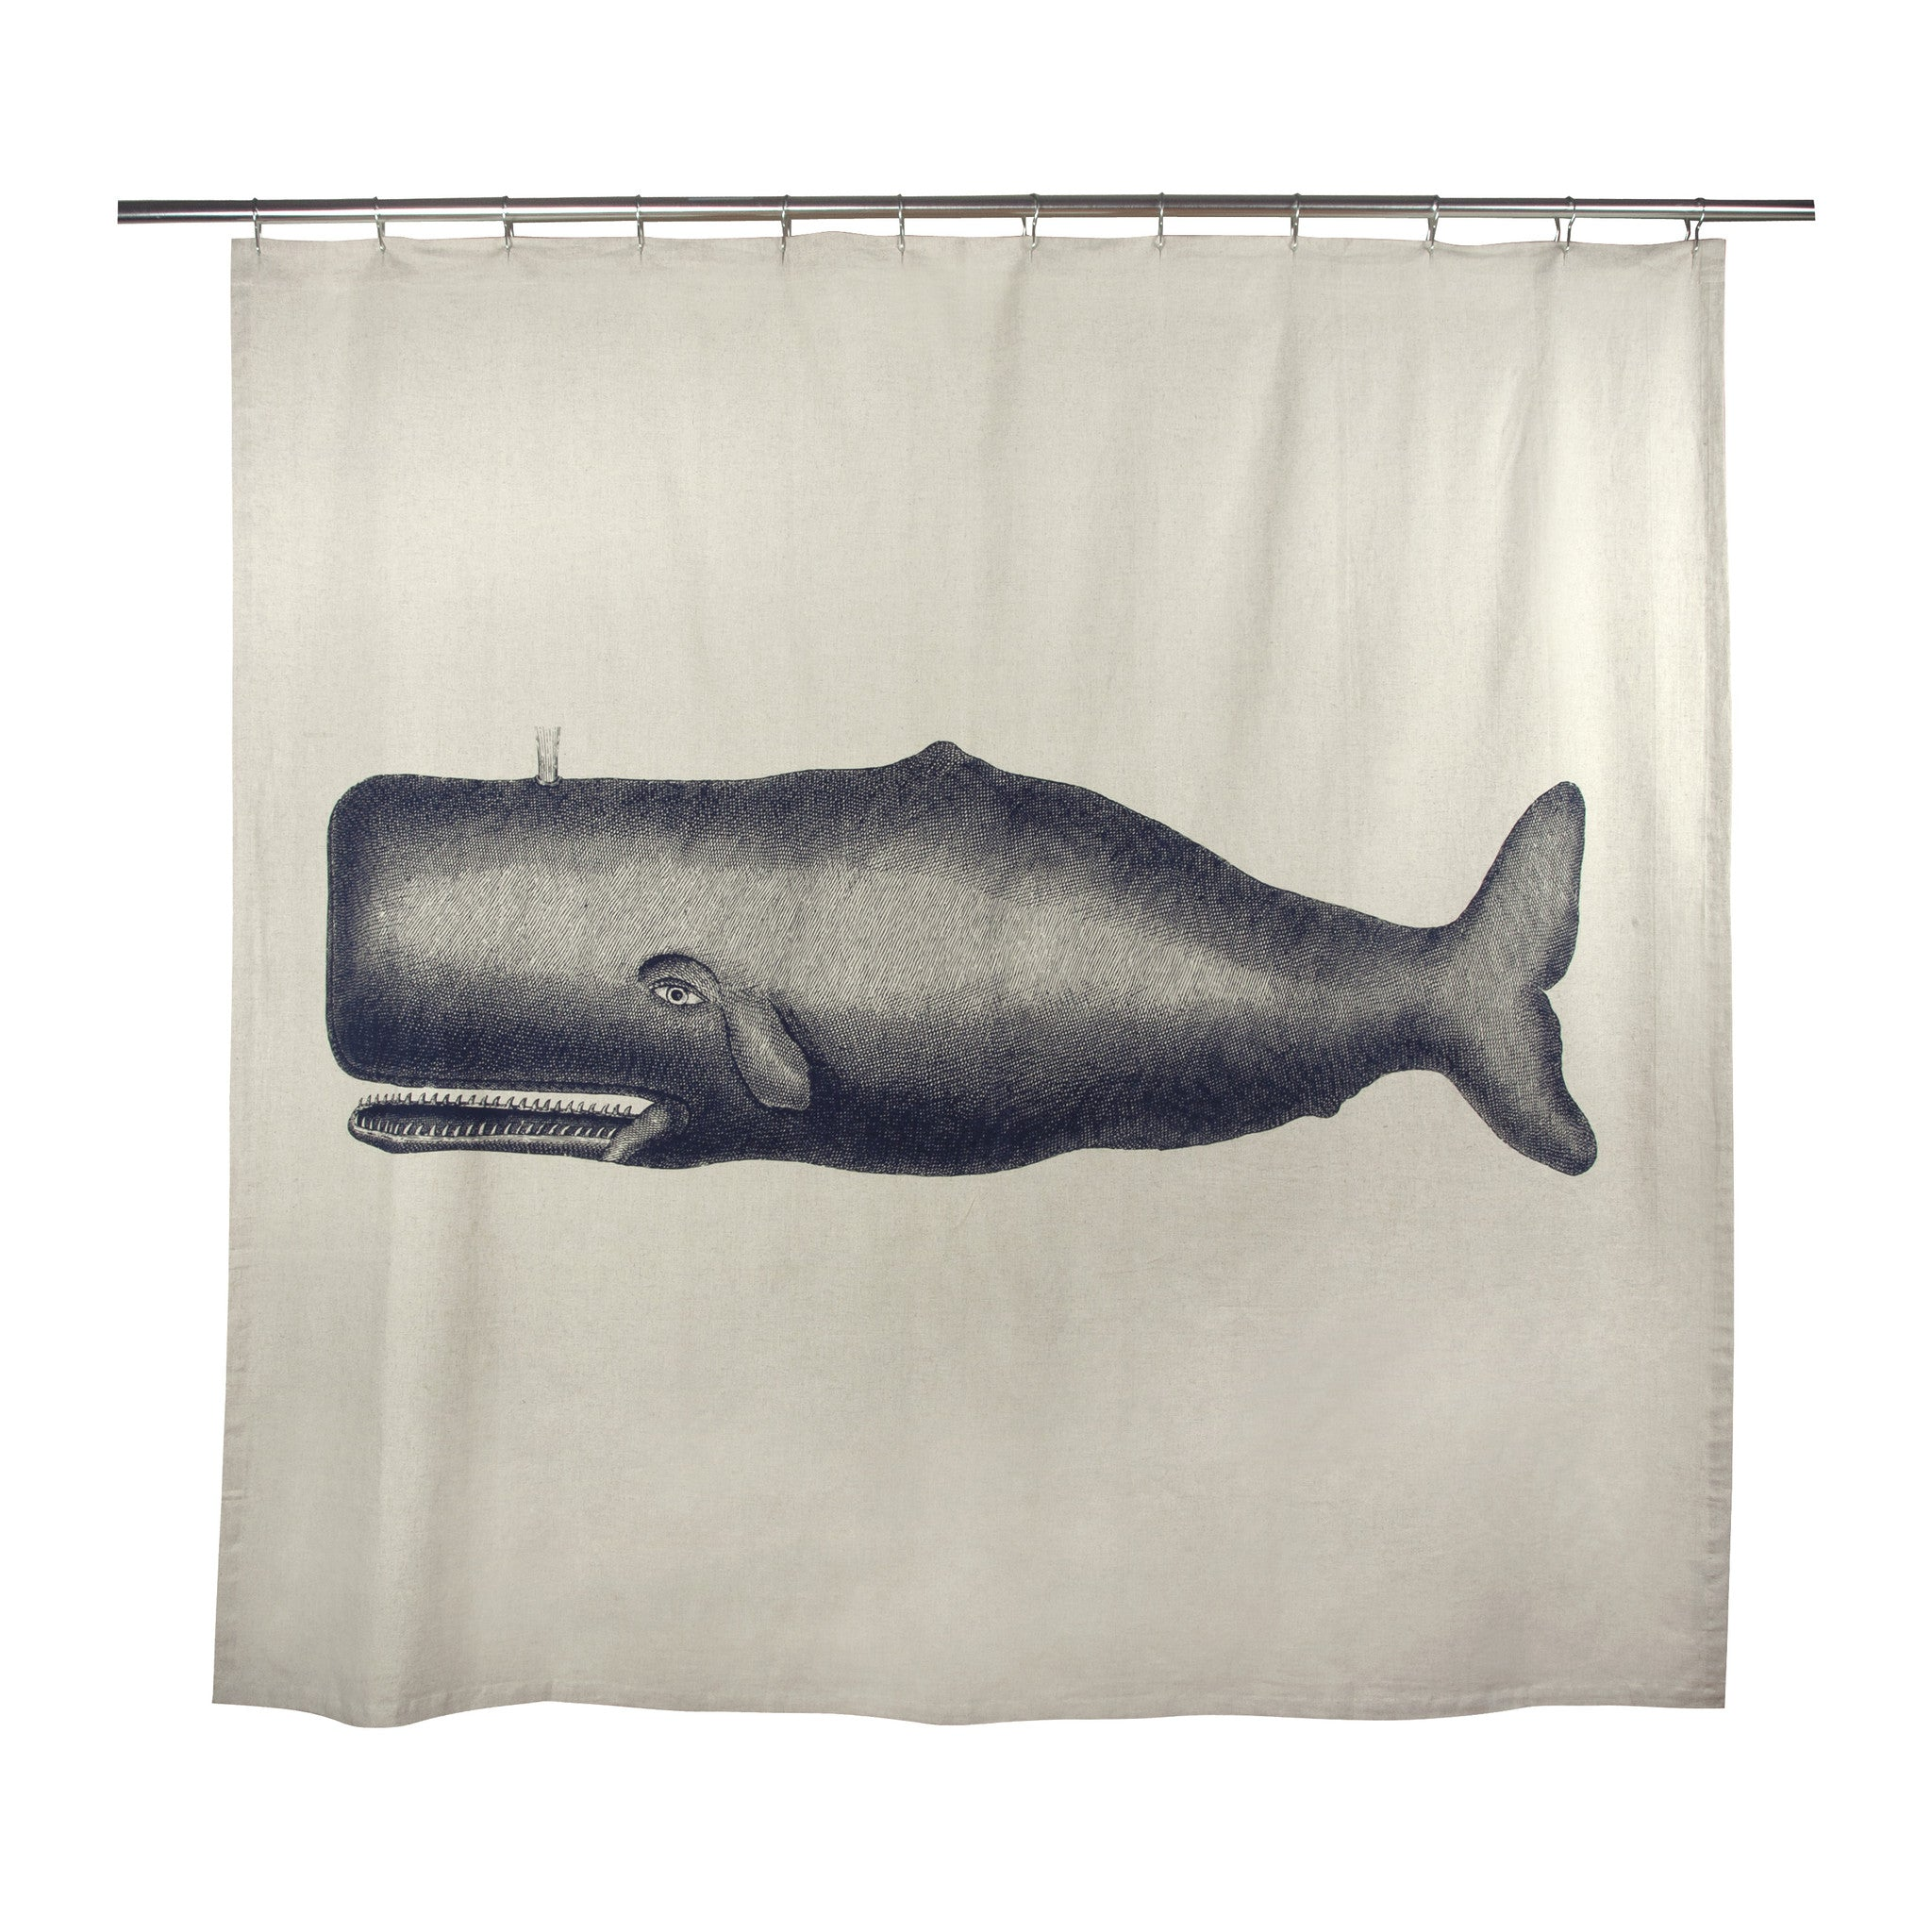 Moby Shower Curtain in Ink design by Thomas Paul – BURKE DECOR